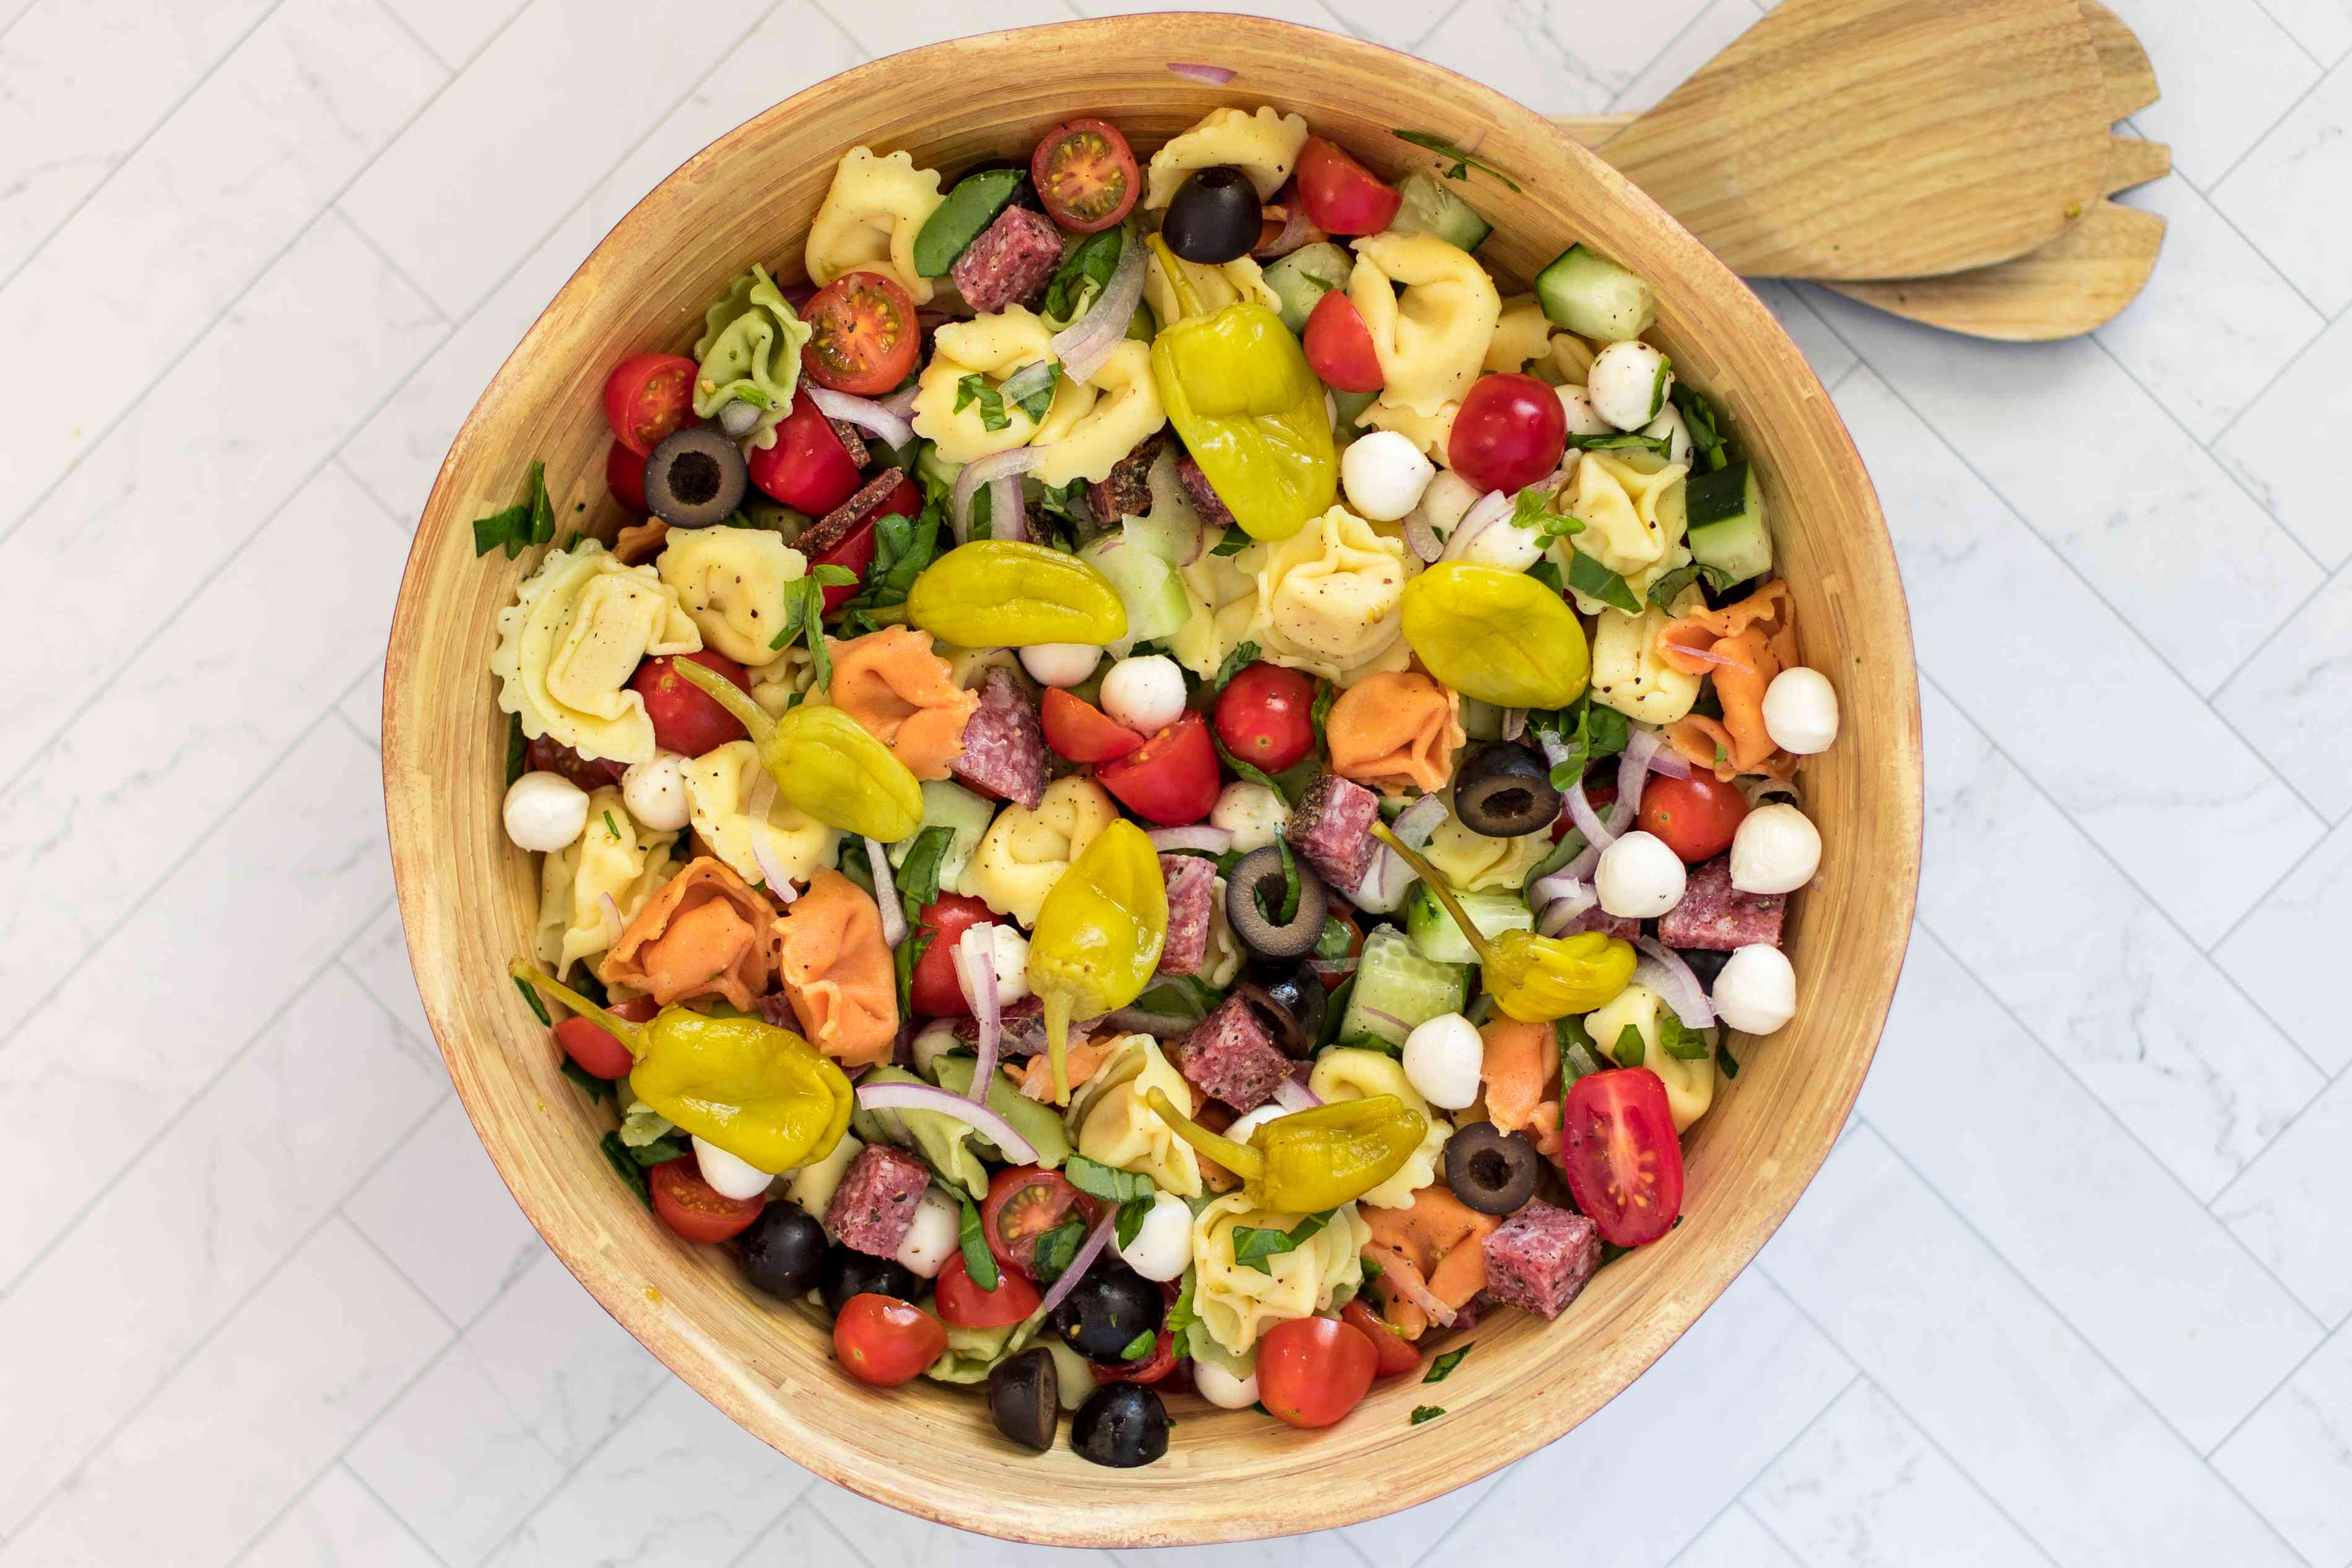 tortellini pasta salad with vegetables, cheese, and salami